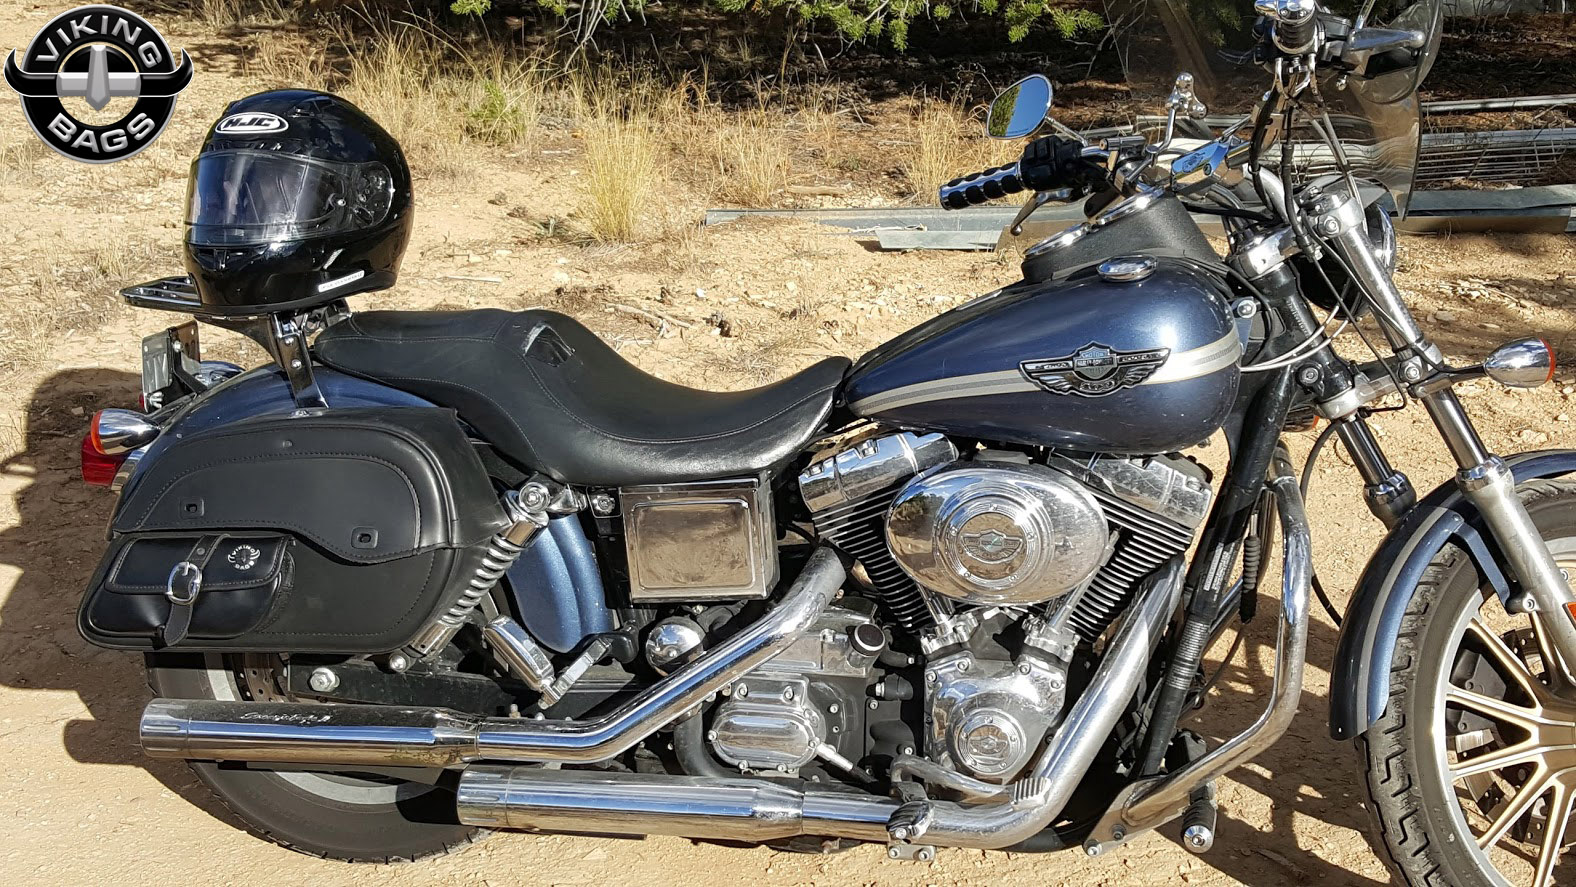 Harley davidson dyna low rider motorcycle saddlebags for Motor cycle saddle bags